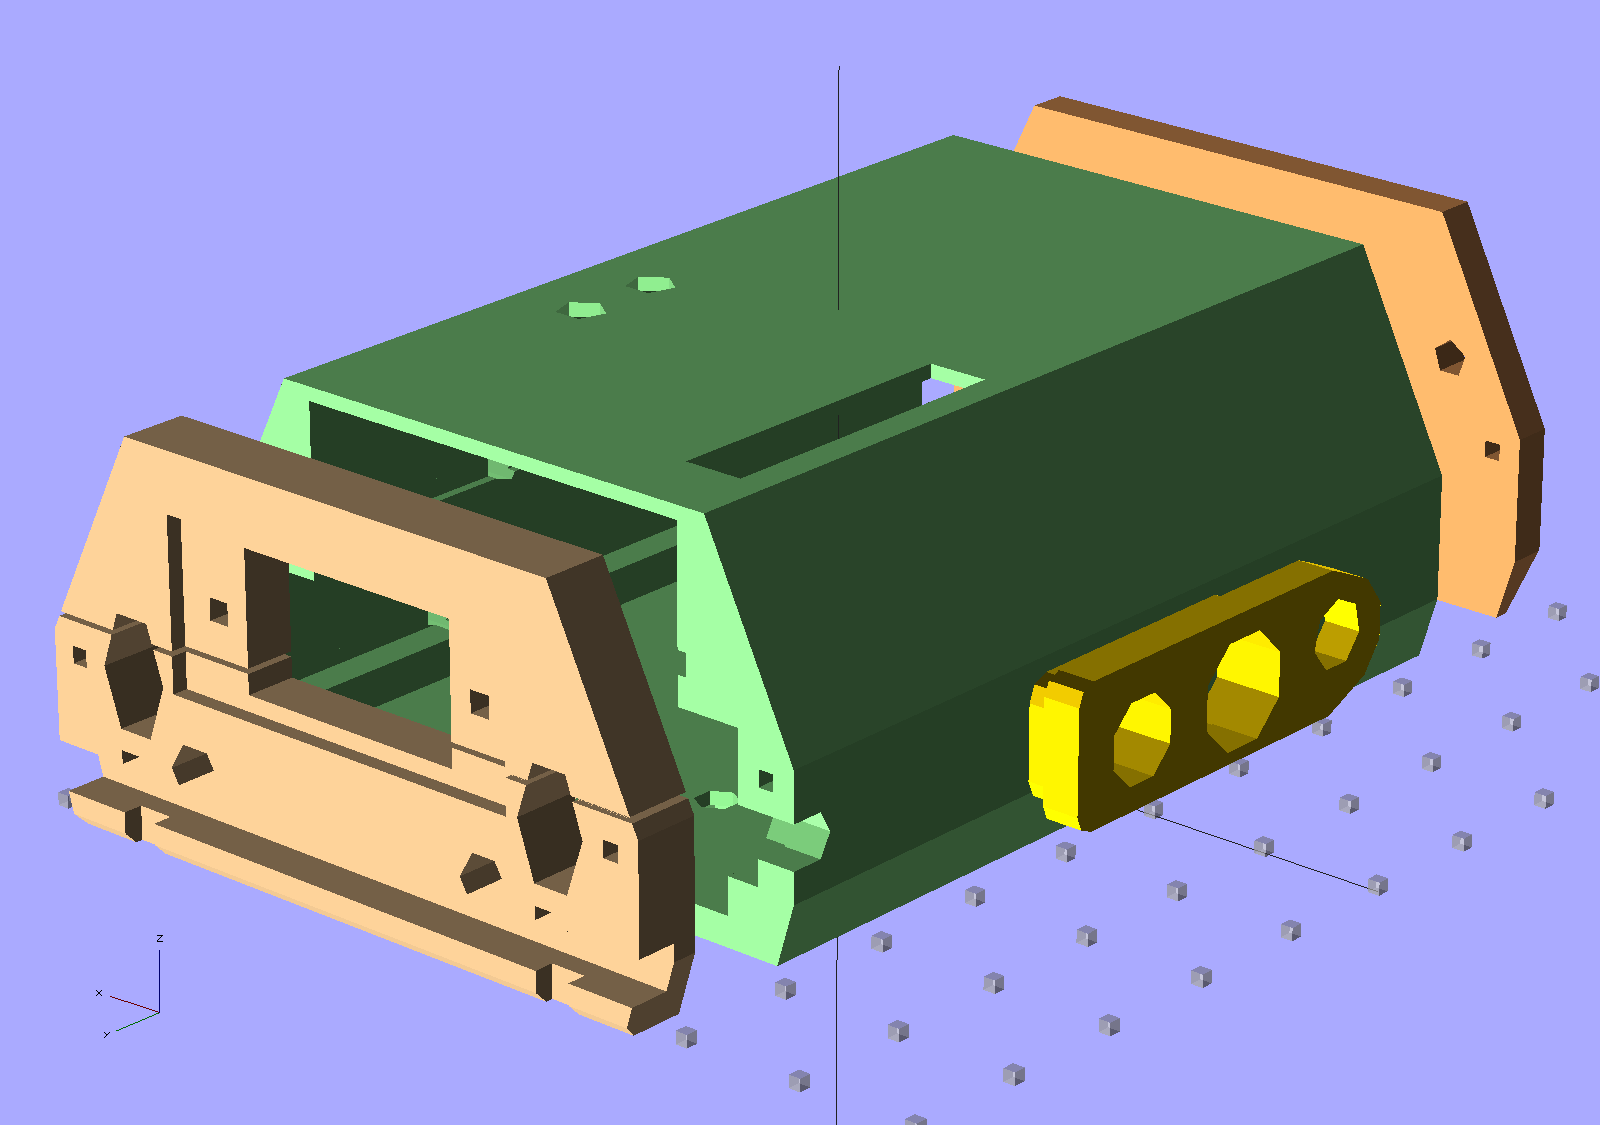 Practical Solid Modeling for 3D Printing with OpenSCAD | The Smell